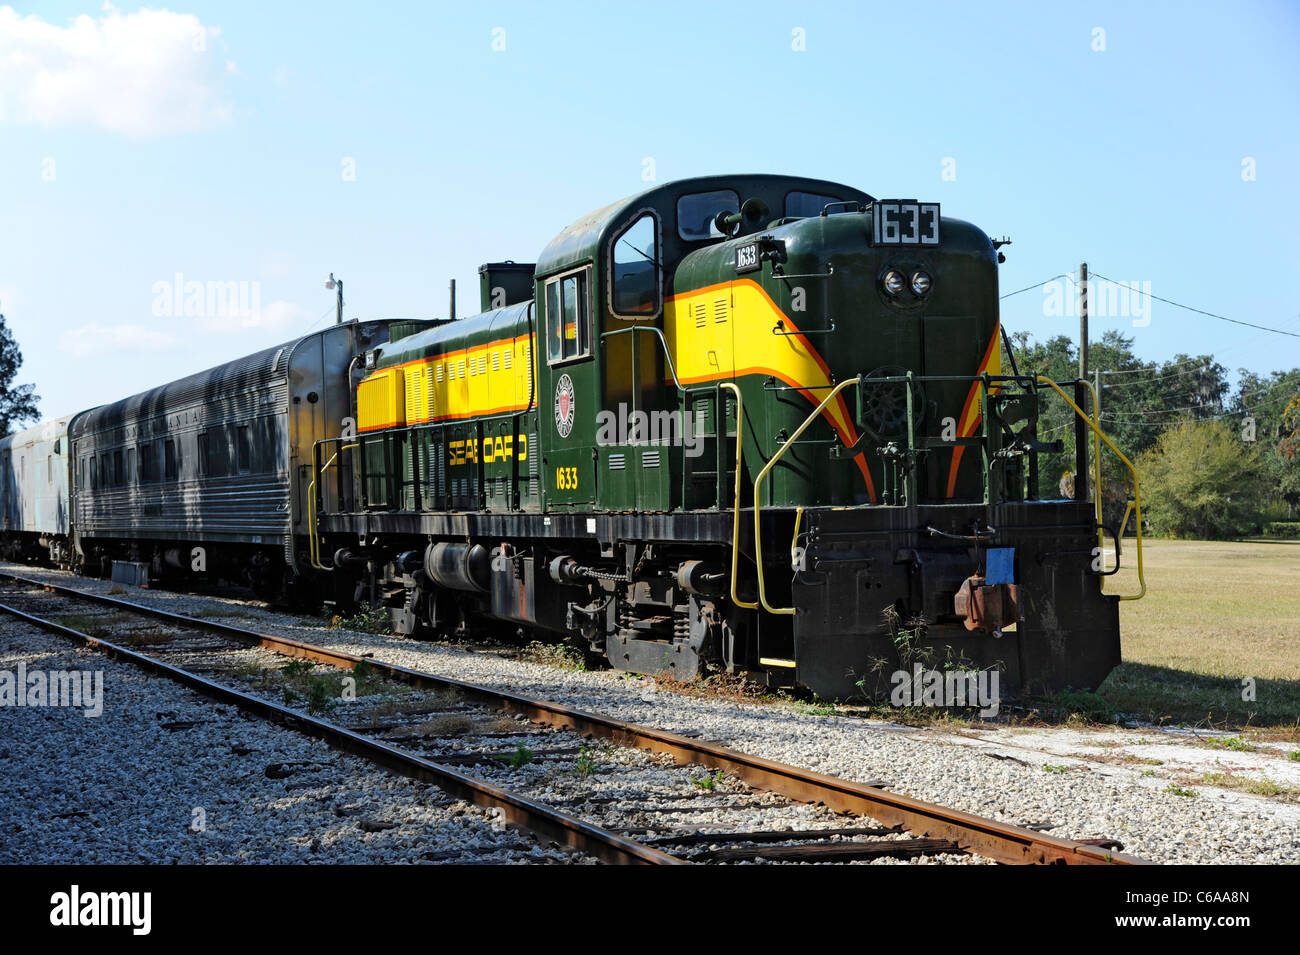 Seaboard diesel locomotive train 1633 Florida Railroad Museum Parrish Florida - Stock Image